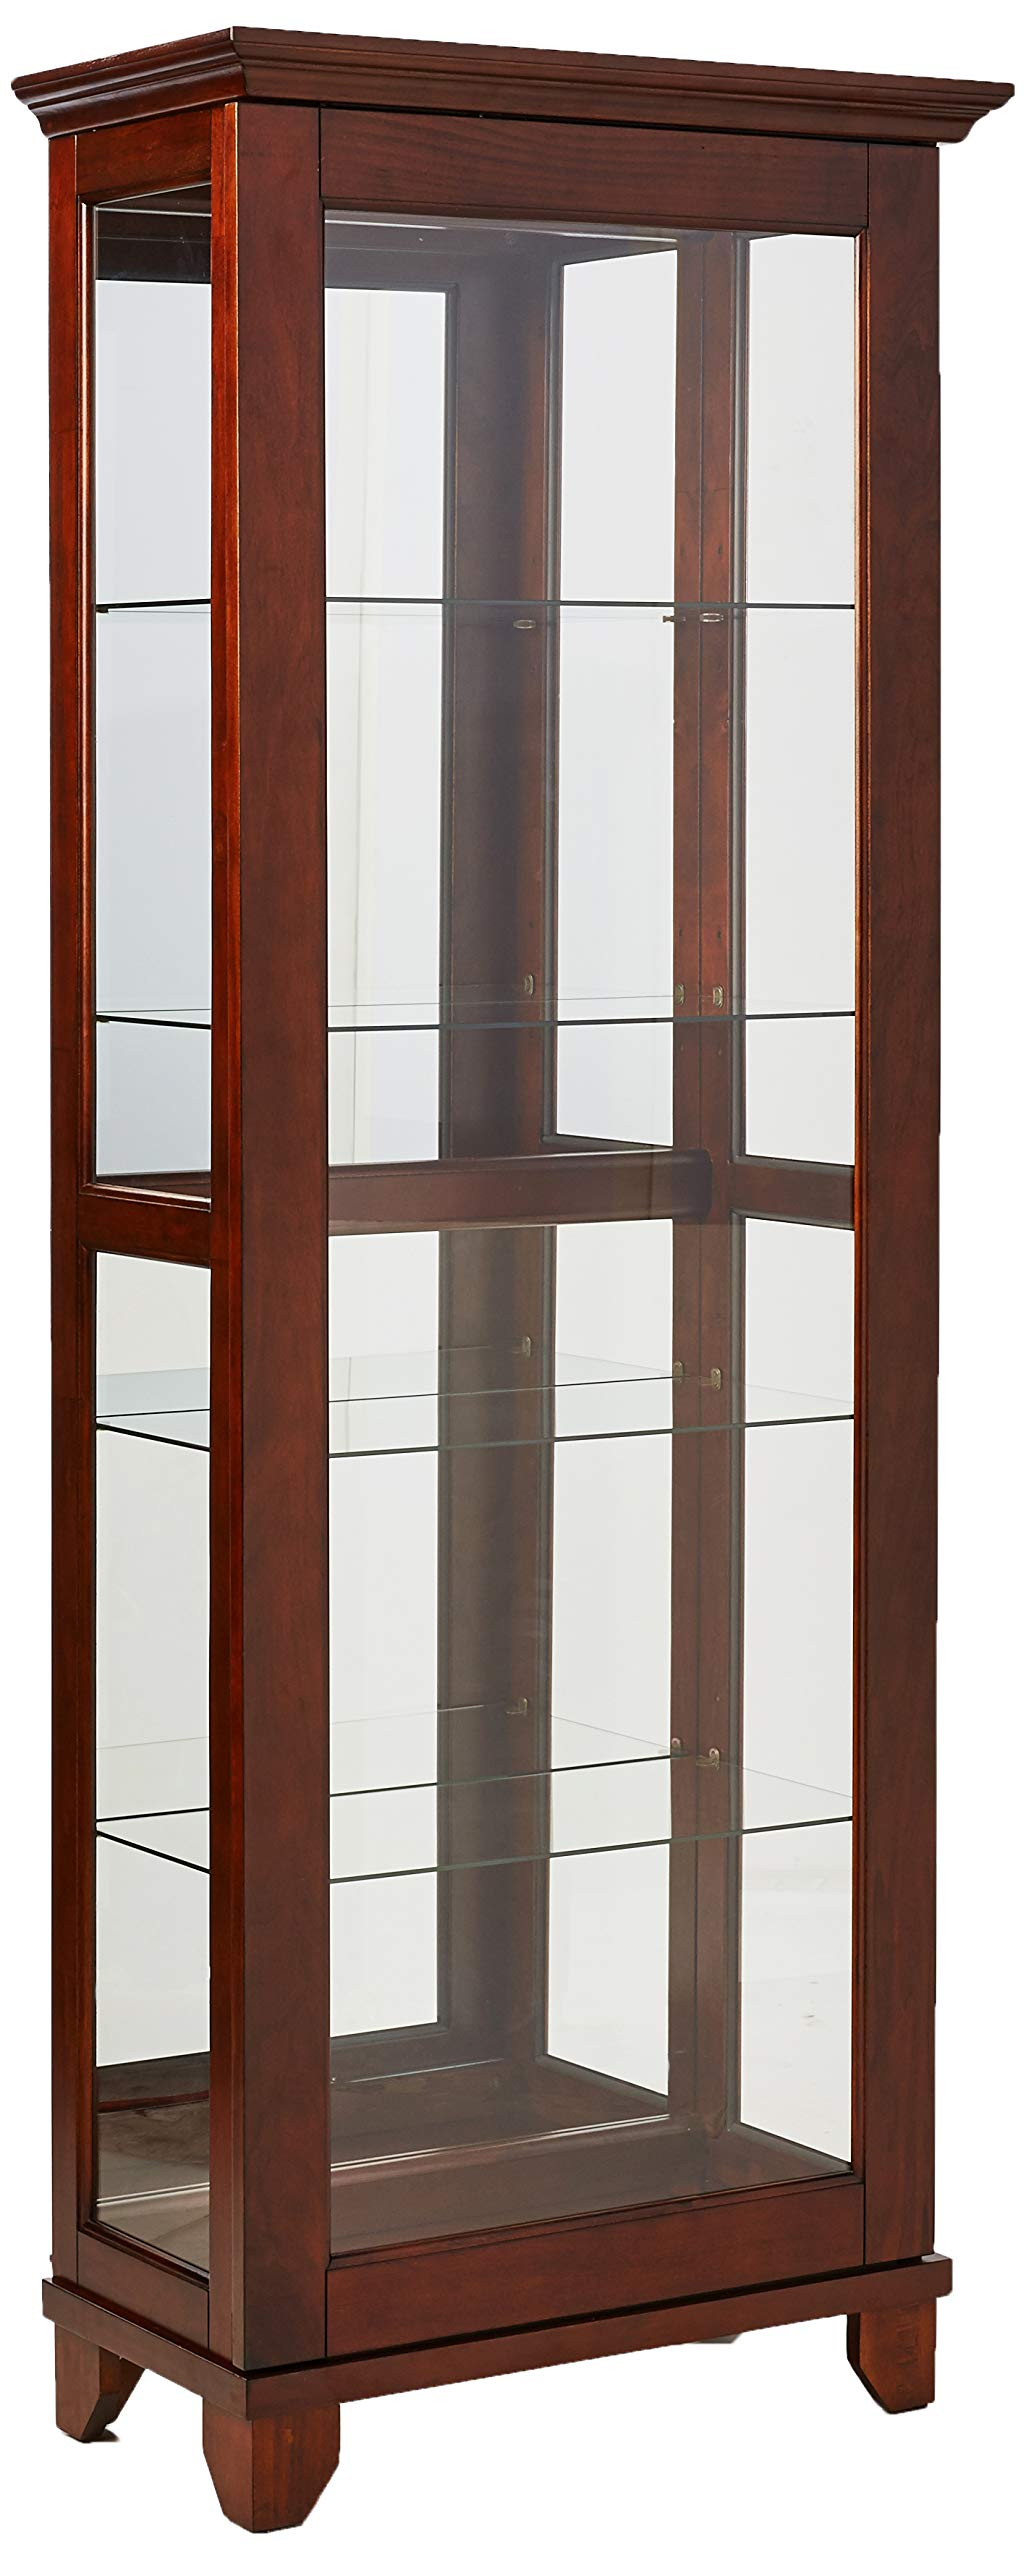 5-Shelf Curio Cabinet with Mirrored Back Chesnut by Coaster Home Furnishings